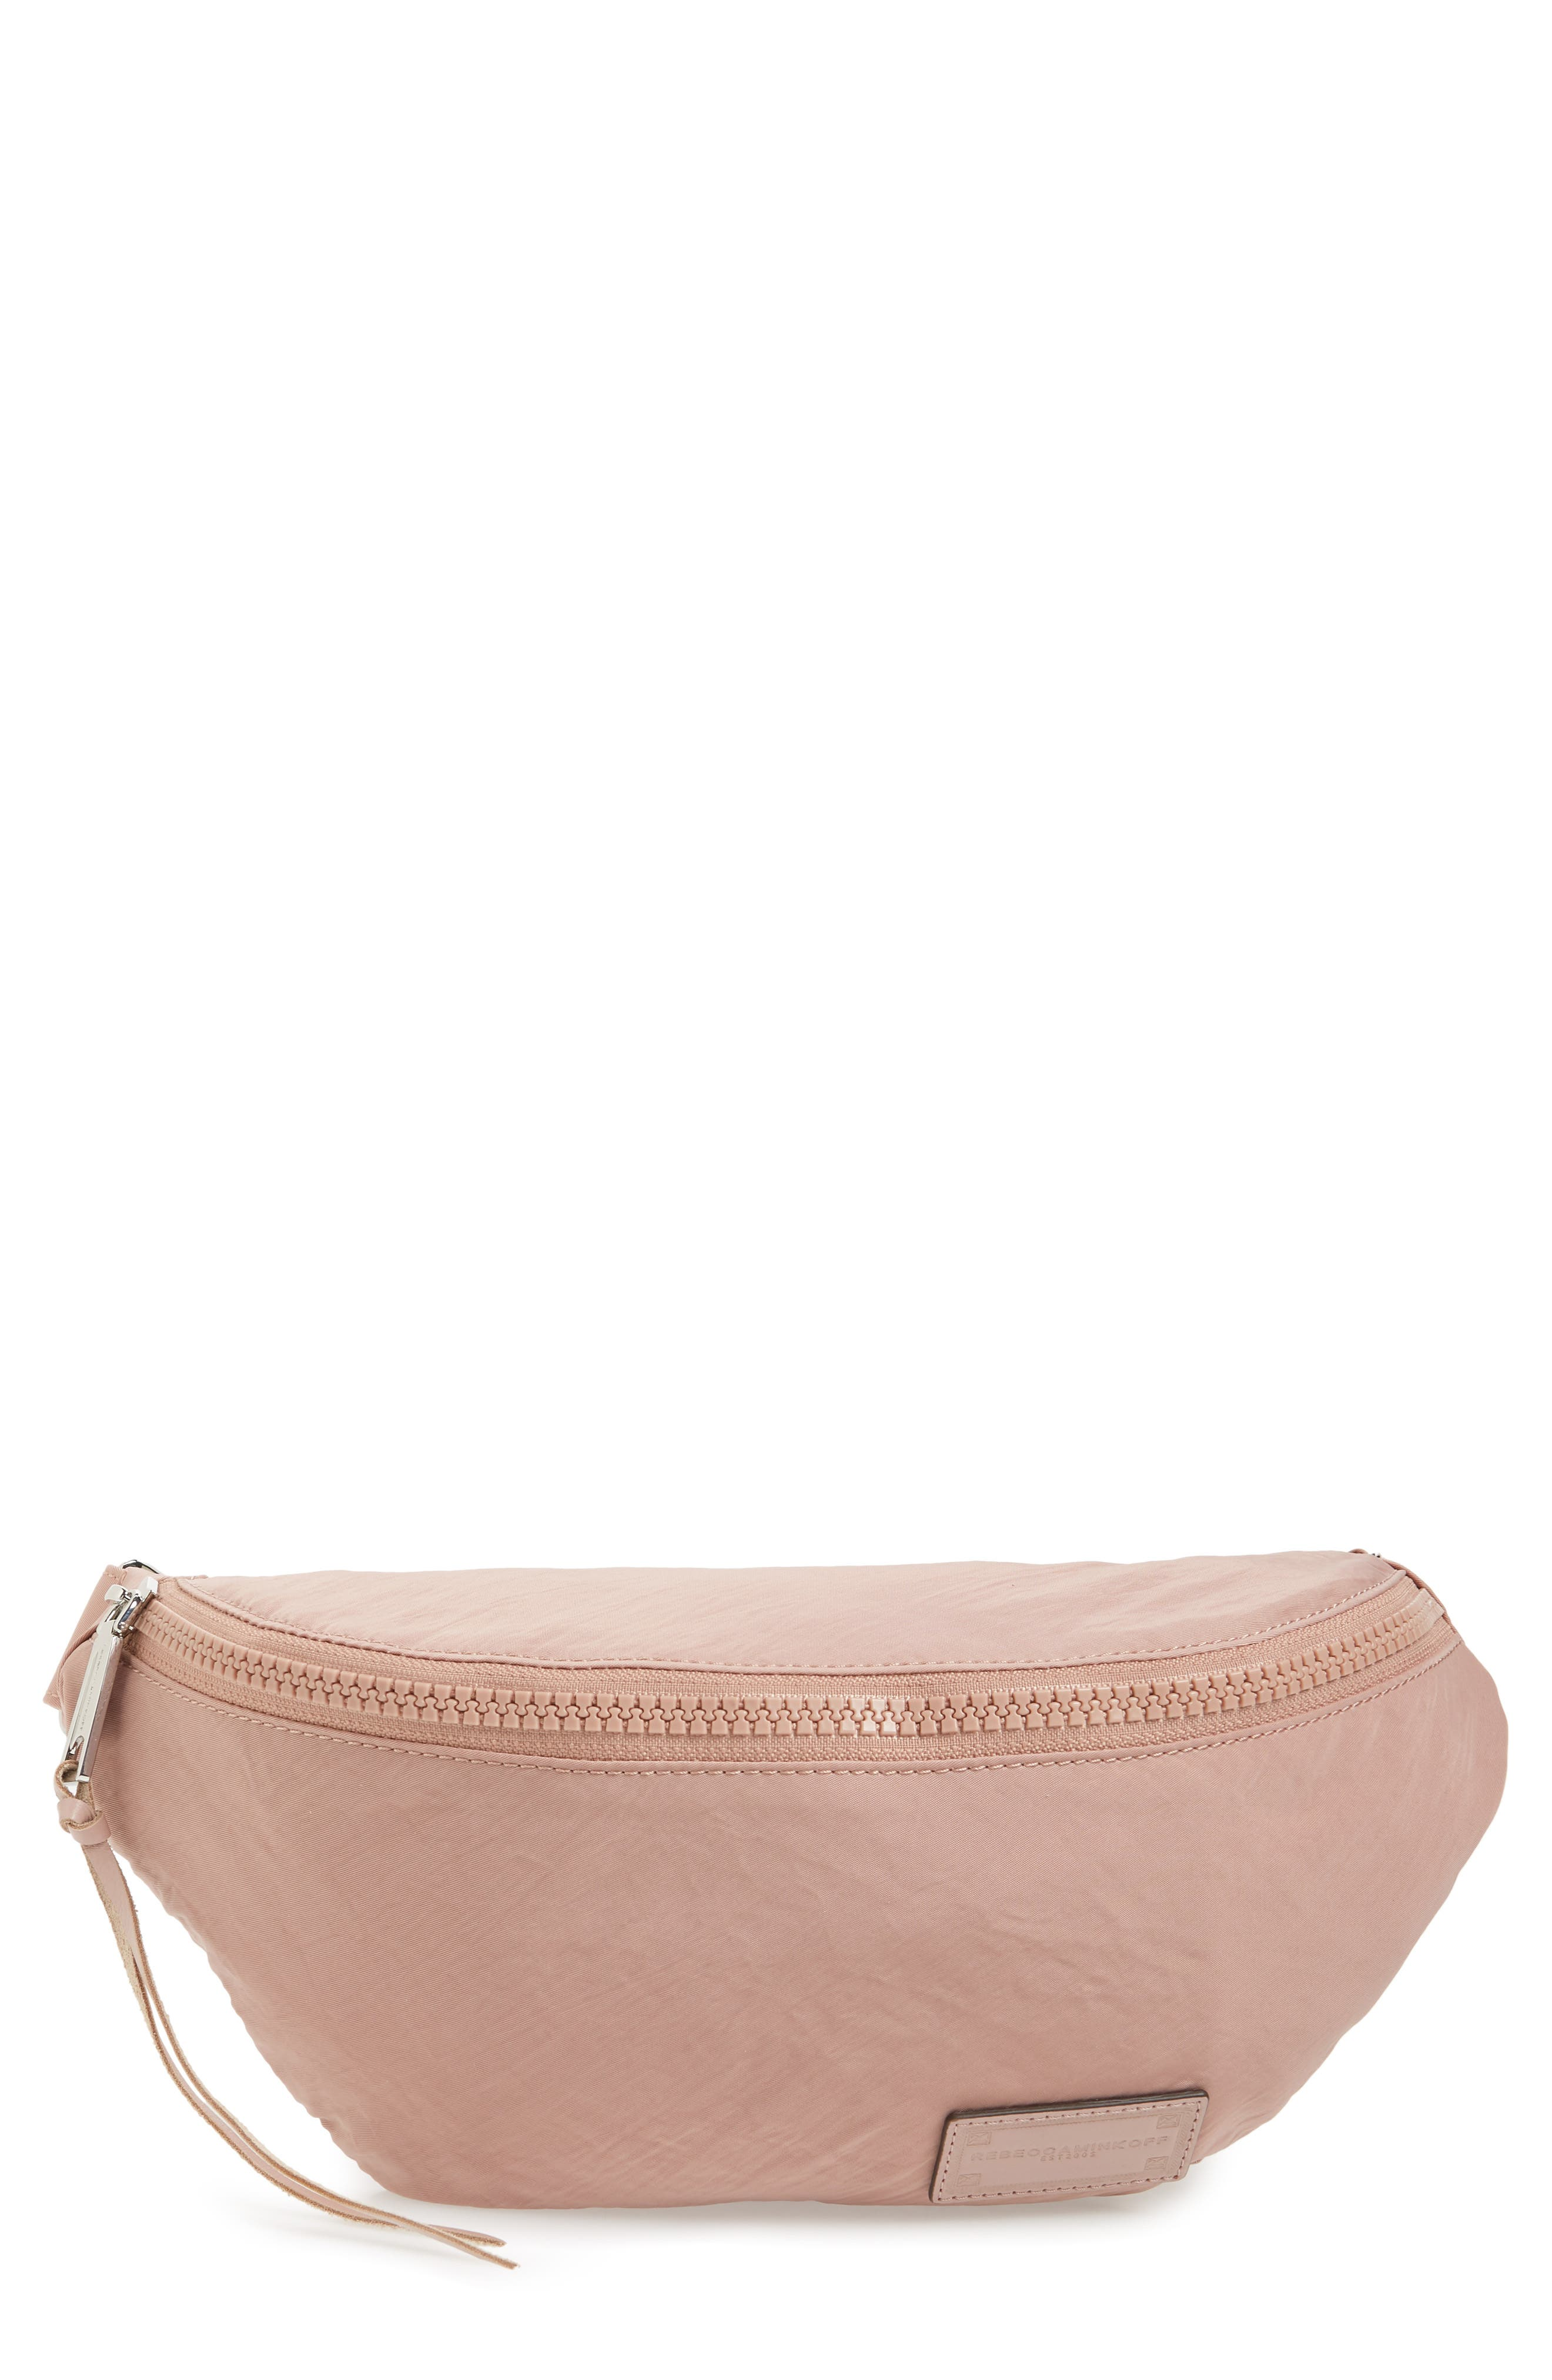 Nylon Belt Bag,                             Main thumbnail 1, color,                             Vintage Pink